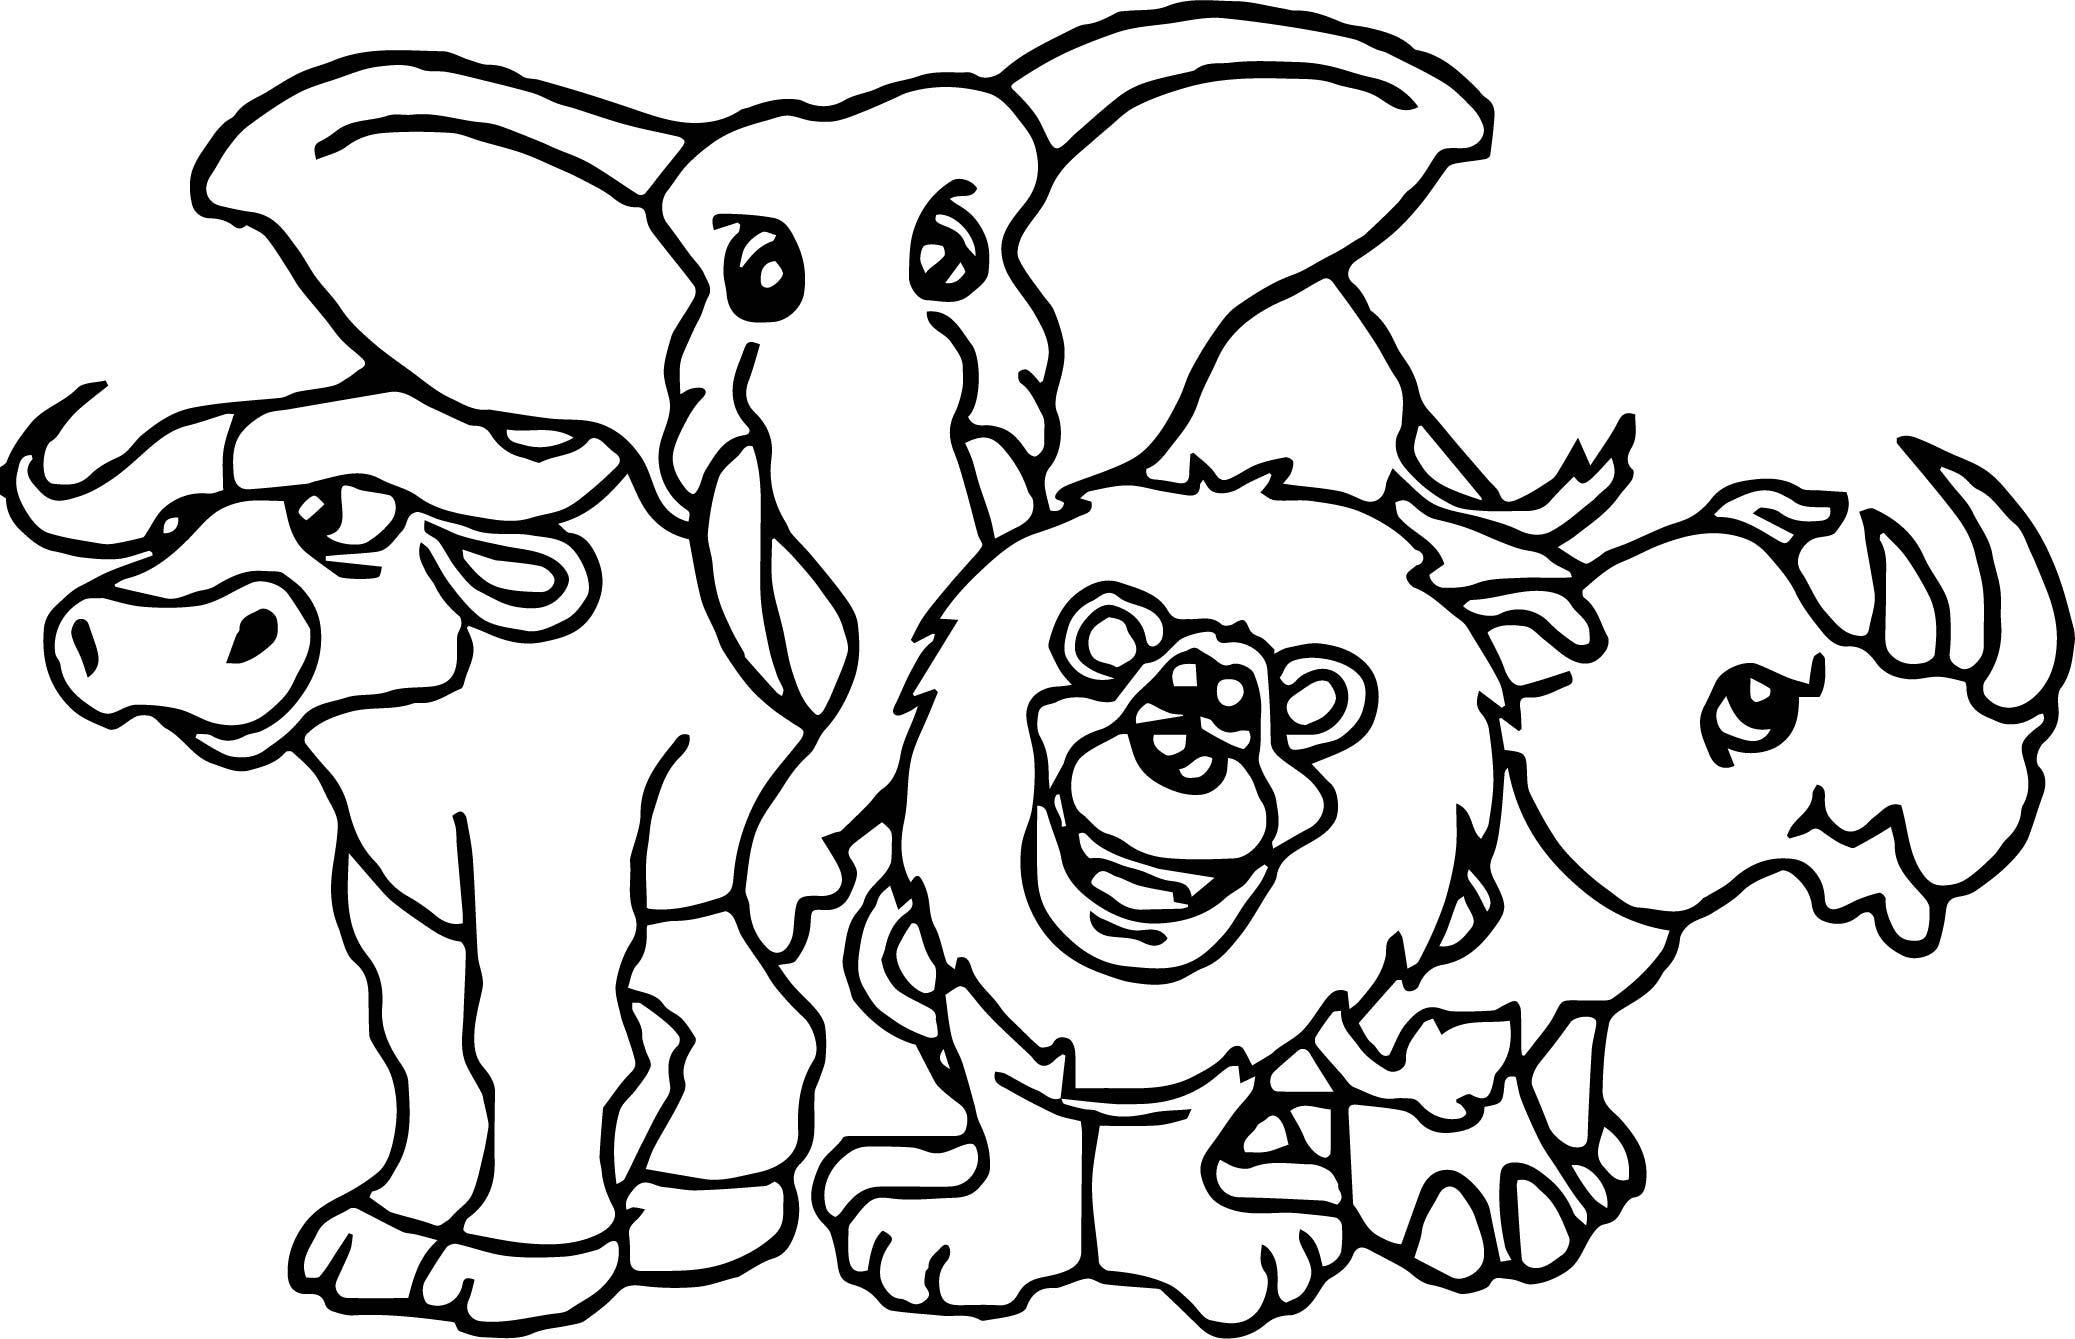 Disneys Animal Kingdom Coloring Pages Coloring Pages